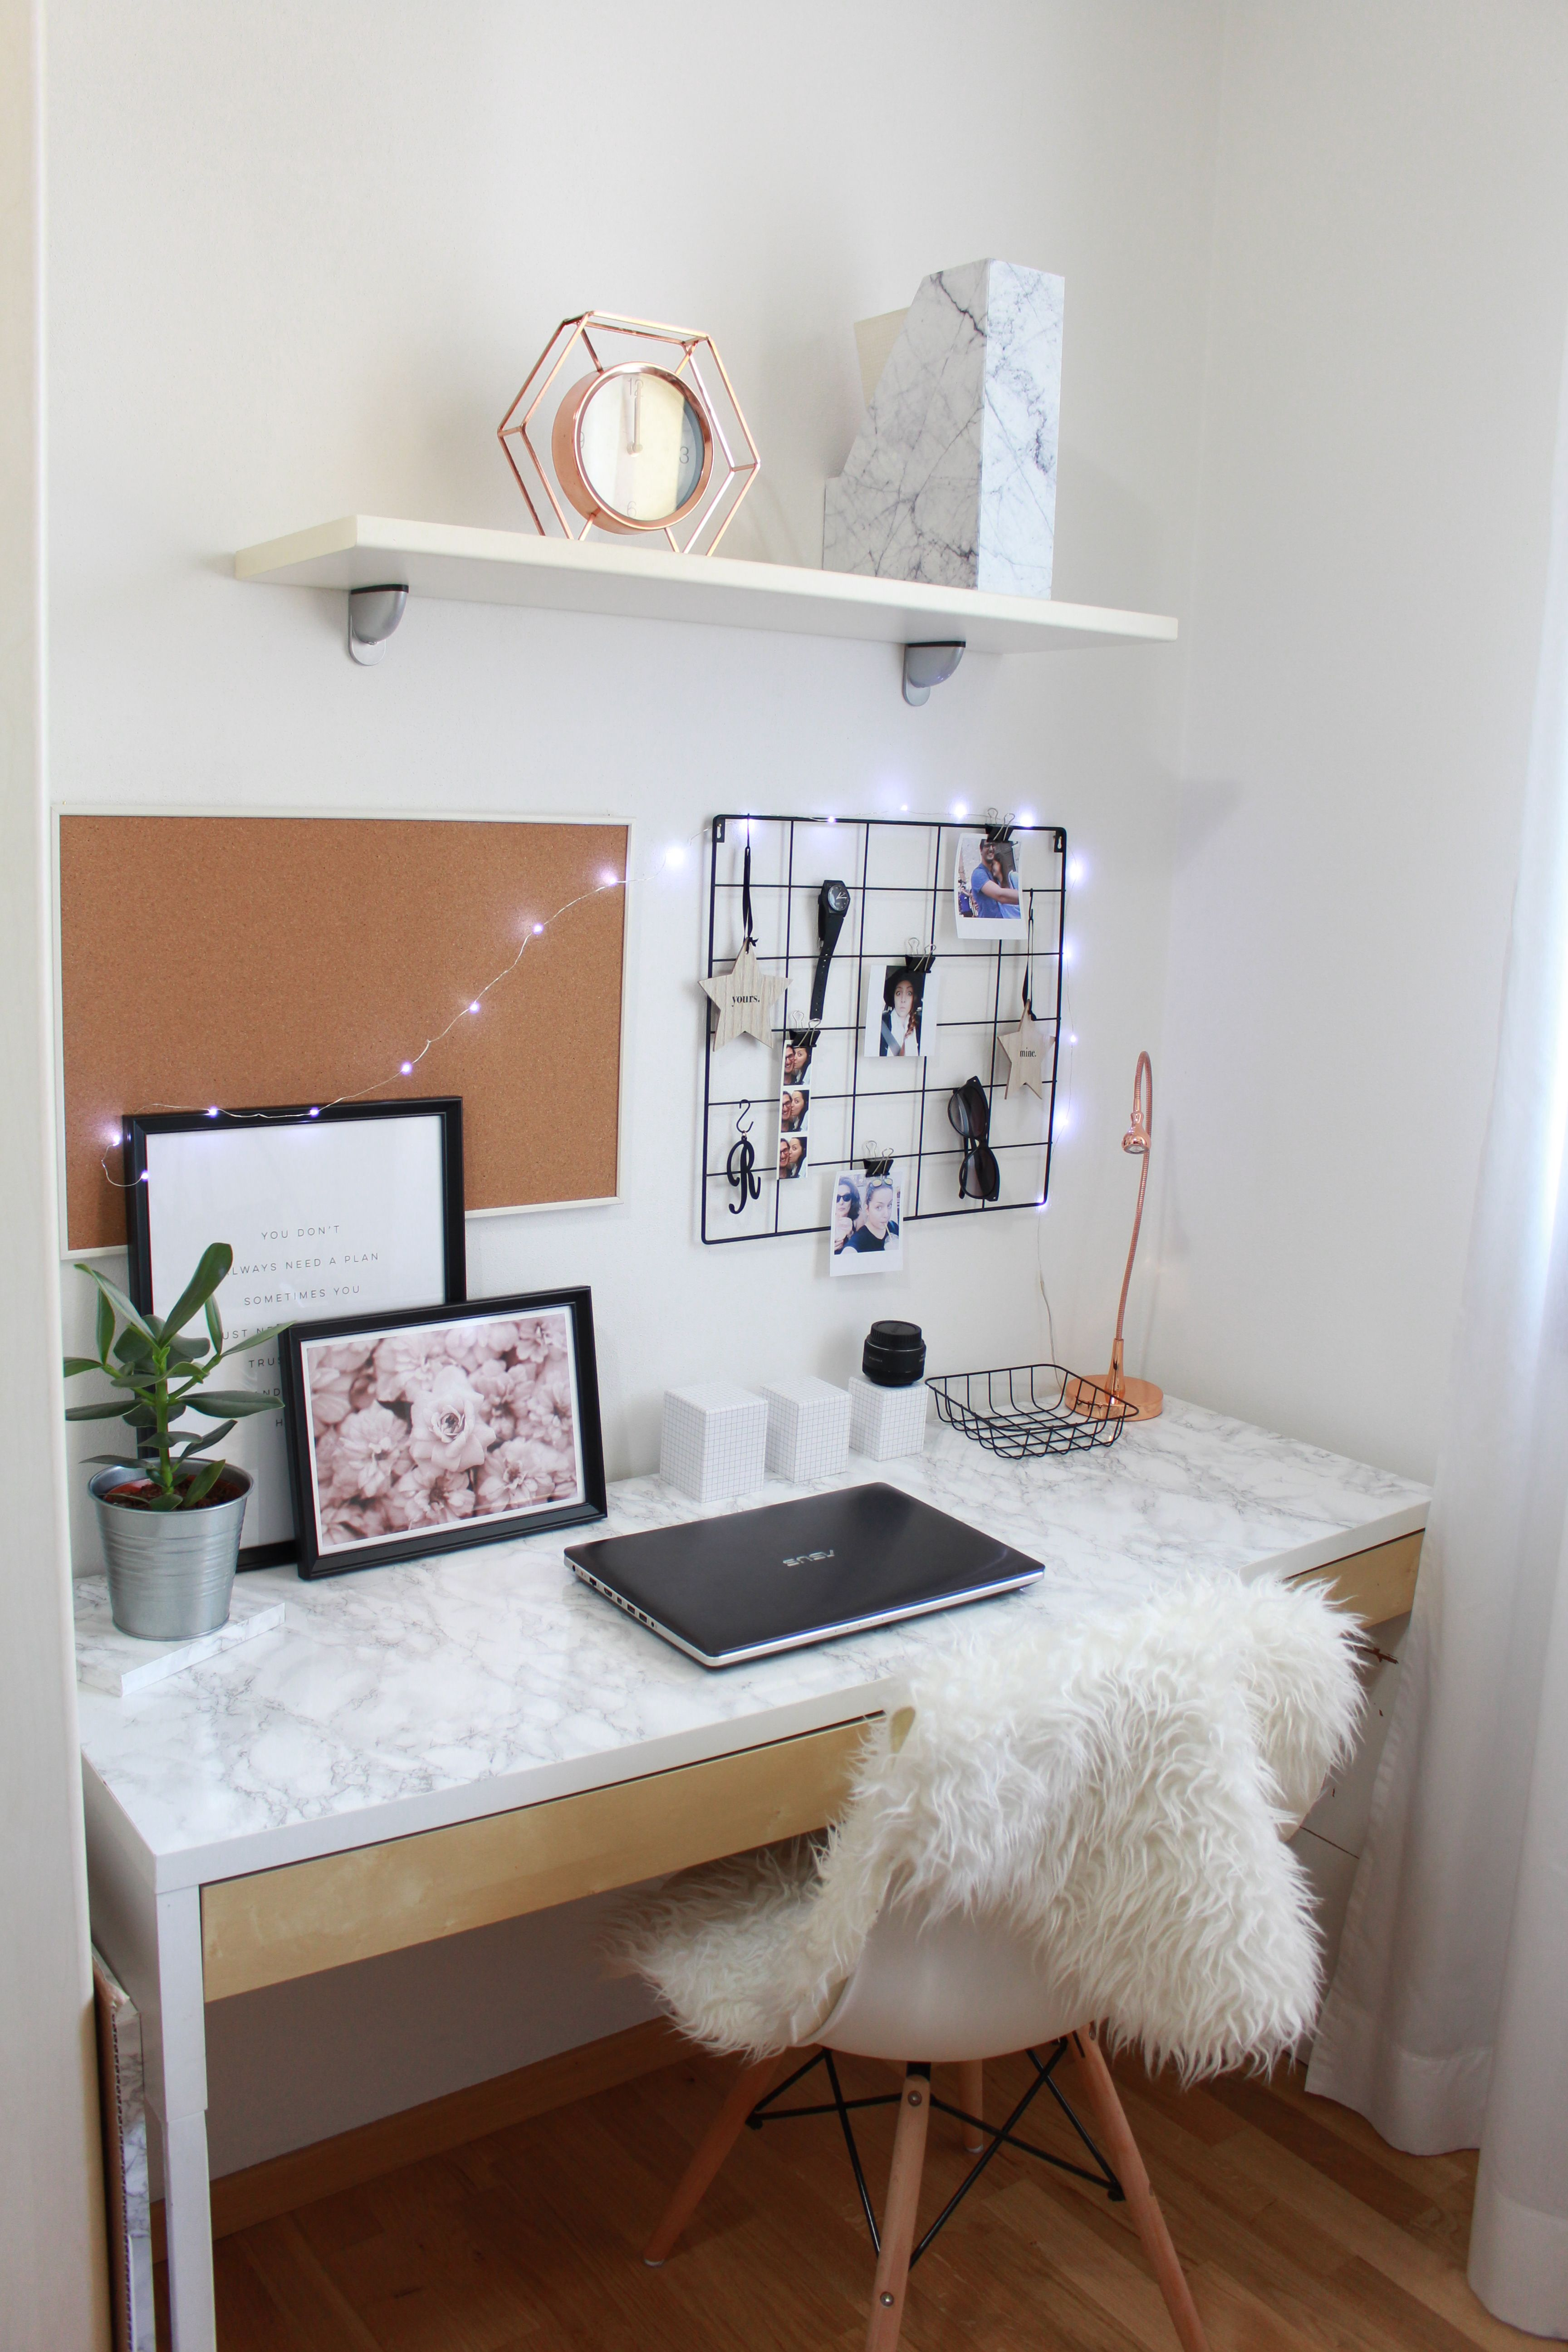 20 Inspirational Home Office Decor Ideas For 2019: Modern Office Decor, Room Decor, Cute Room Ideas